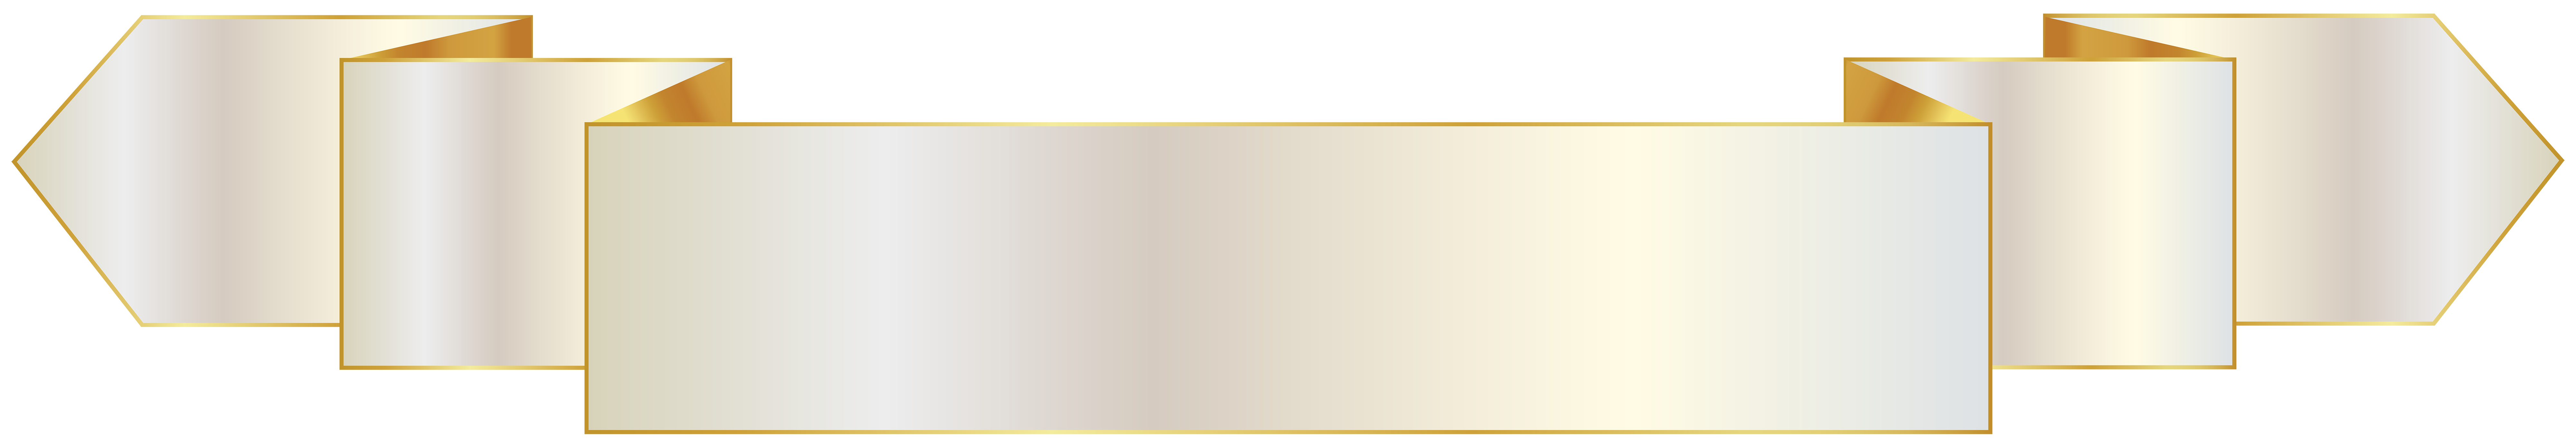 Black and gold banner png. White transparent image gallery